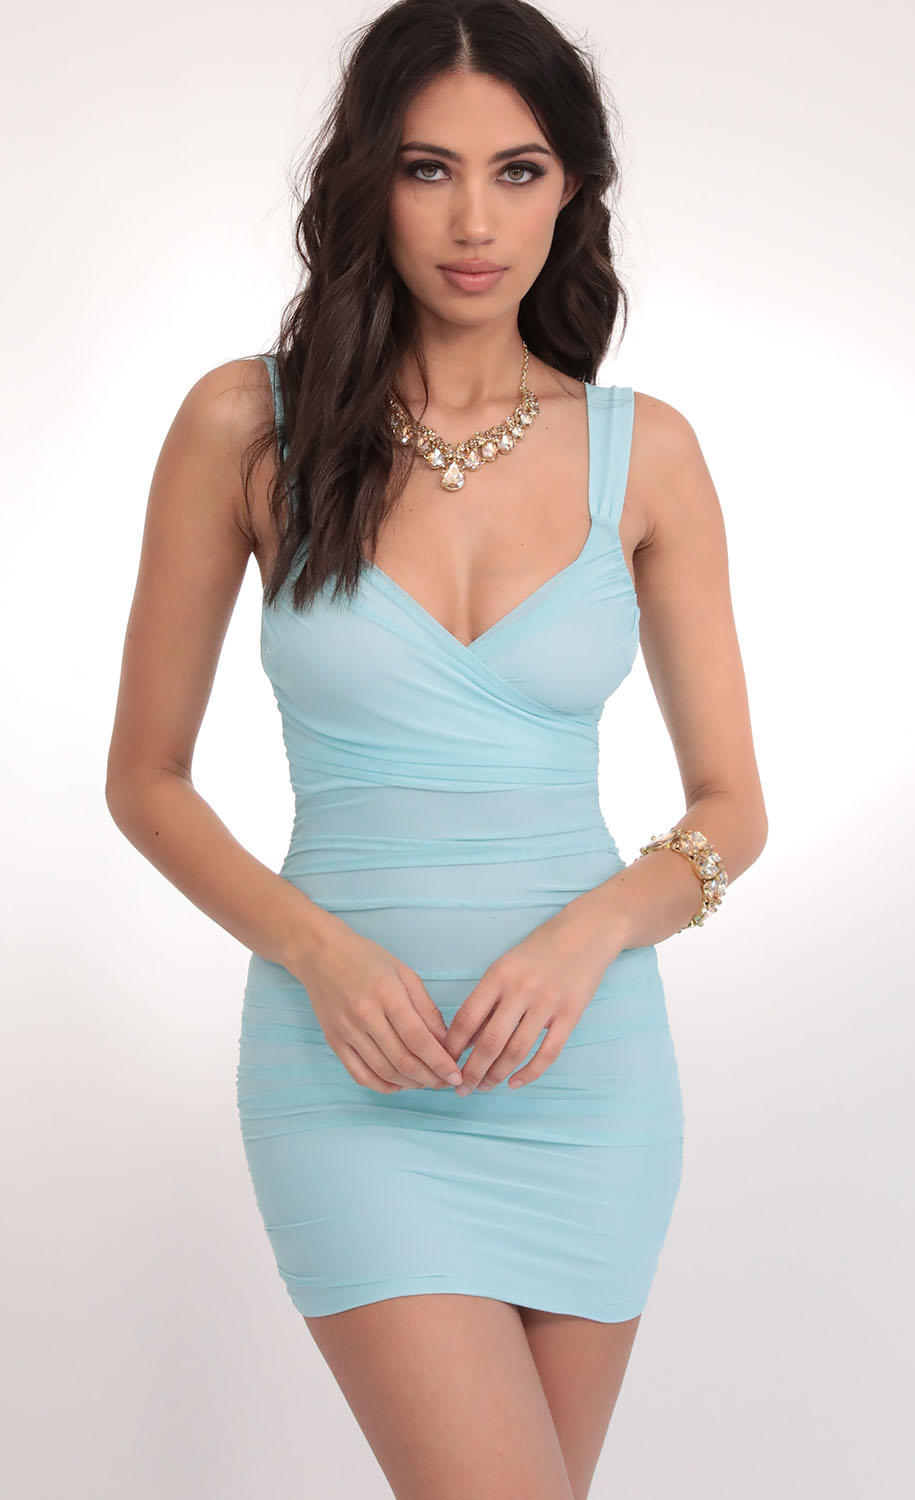 Sweetheart Mesh Dress in Aqua Blue